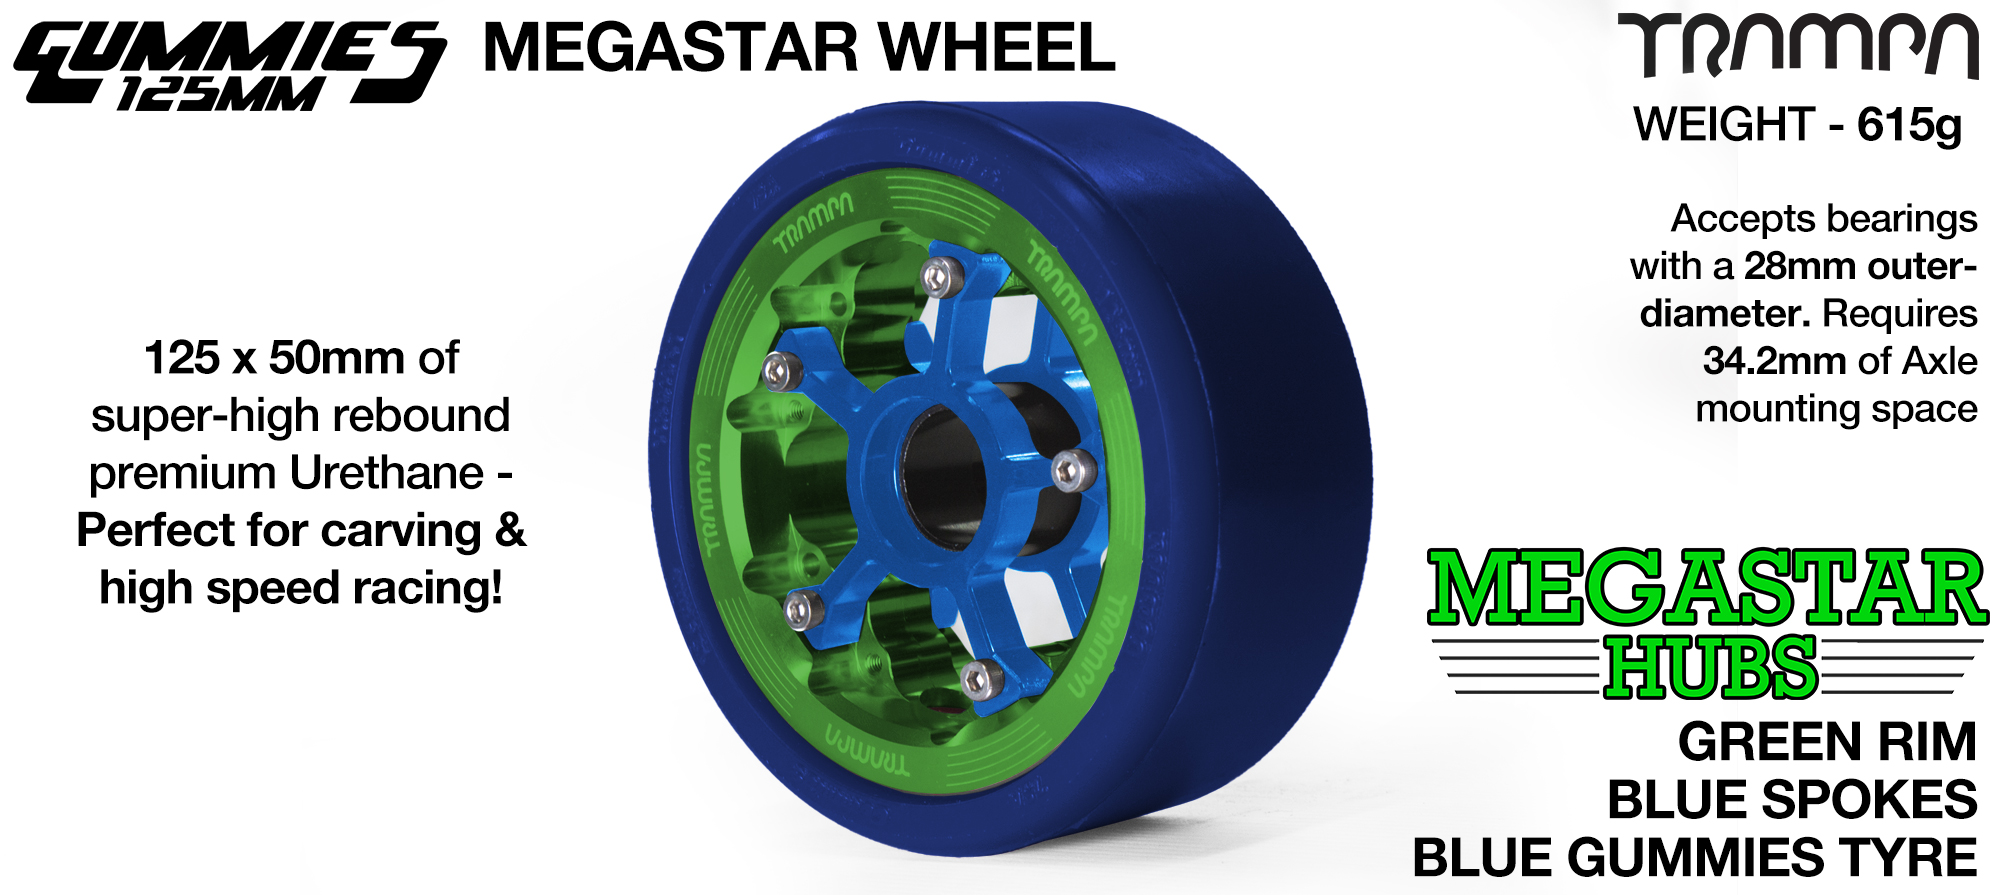 GREEN MEGASTAR Rim with BLUE Spokes with BLUE Gummies - The Ulrimate Longboard Wheel